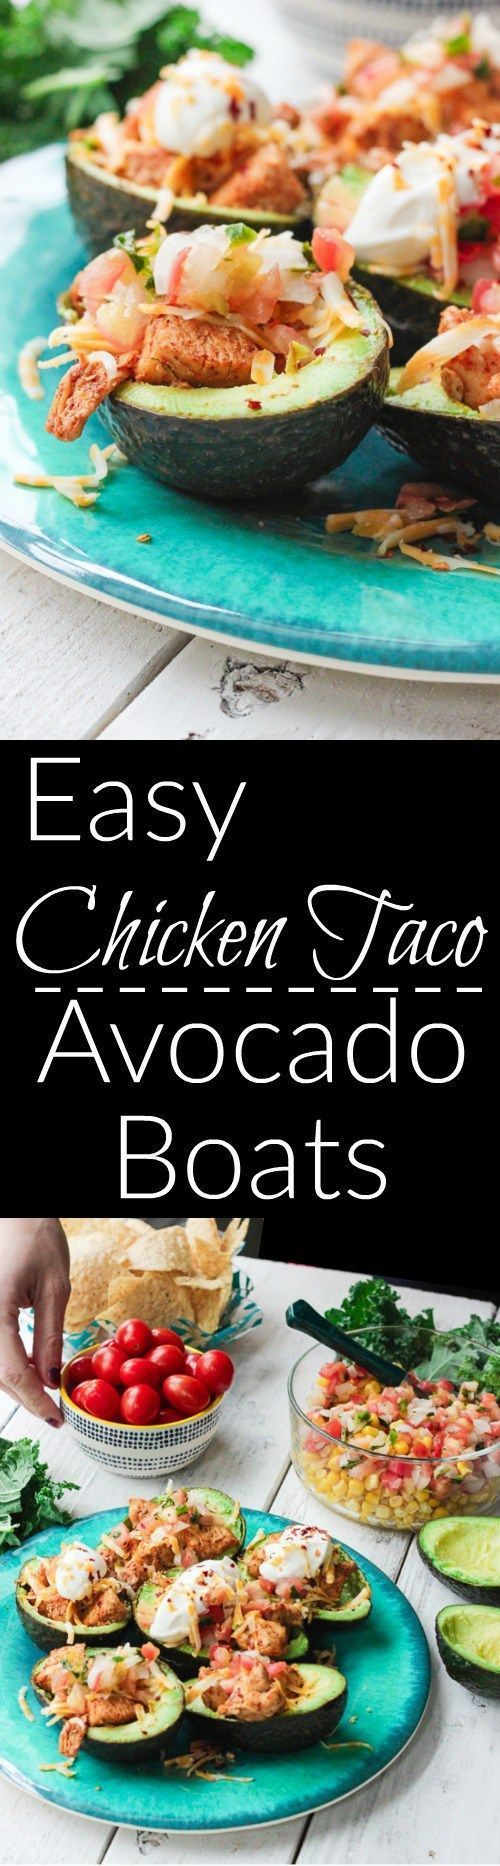 These chicken taco avocado boats are a quick and tasty option for your party or appetizer table. These are a healthy alternative to tacos while keeping that punch of flavor! http://www.BlessHerHeartYall.com